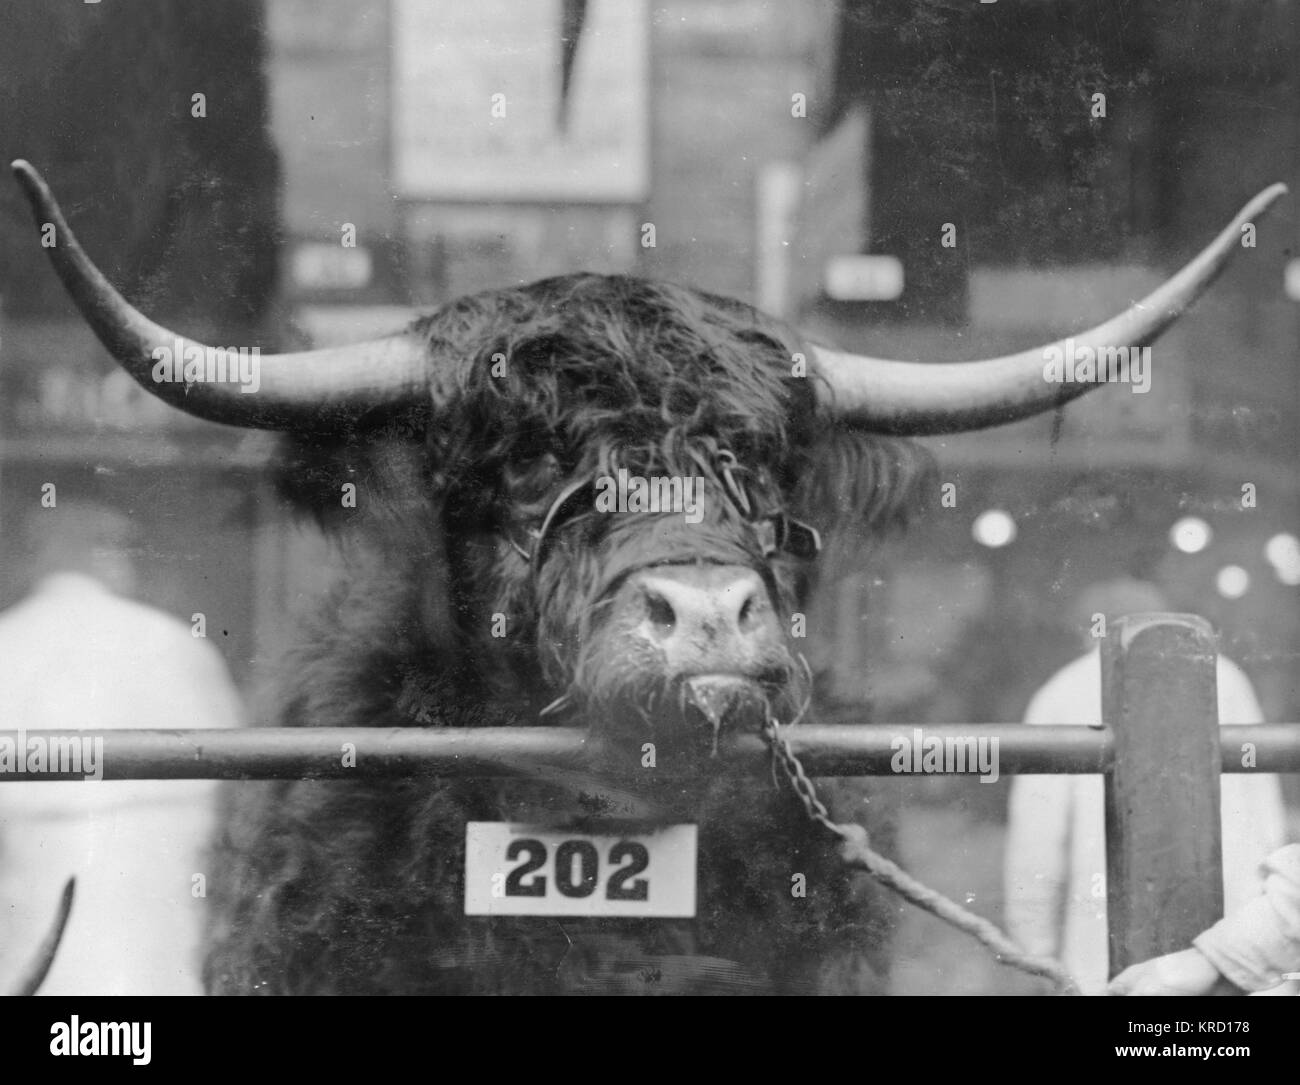 One of King Edward VII's prizewinners at the Smithfield Show in the Agricultural Hall, Islington, North London. - Stock Image